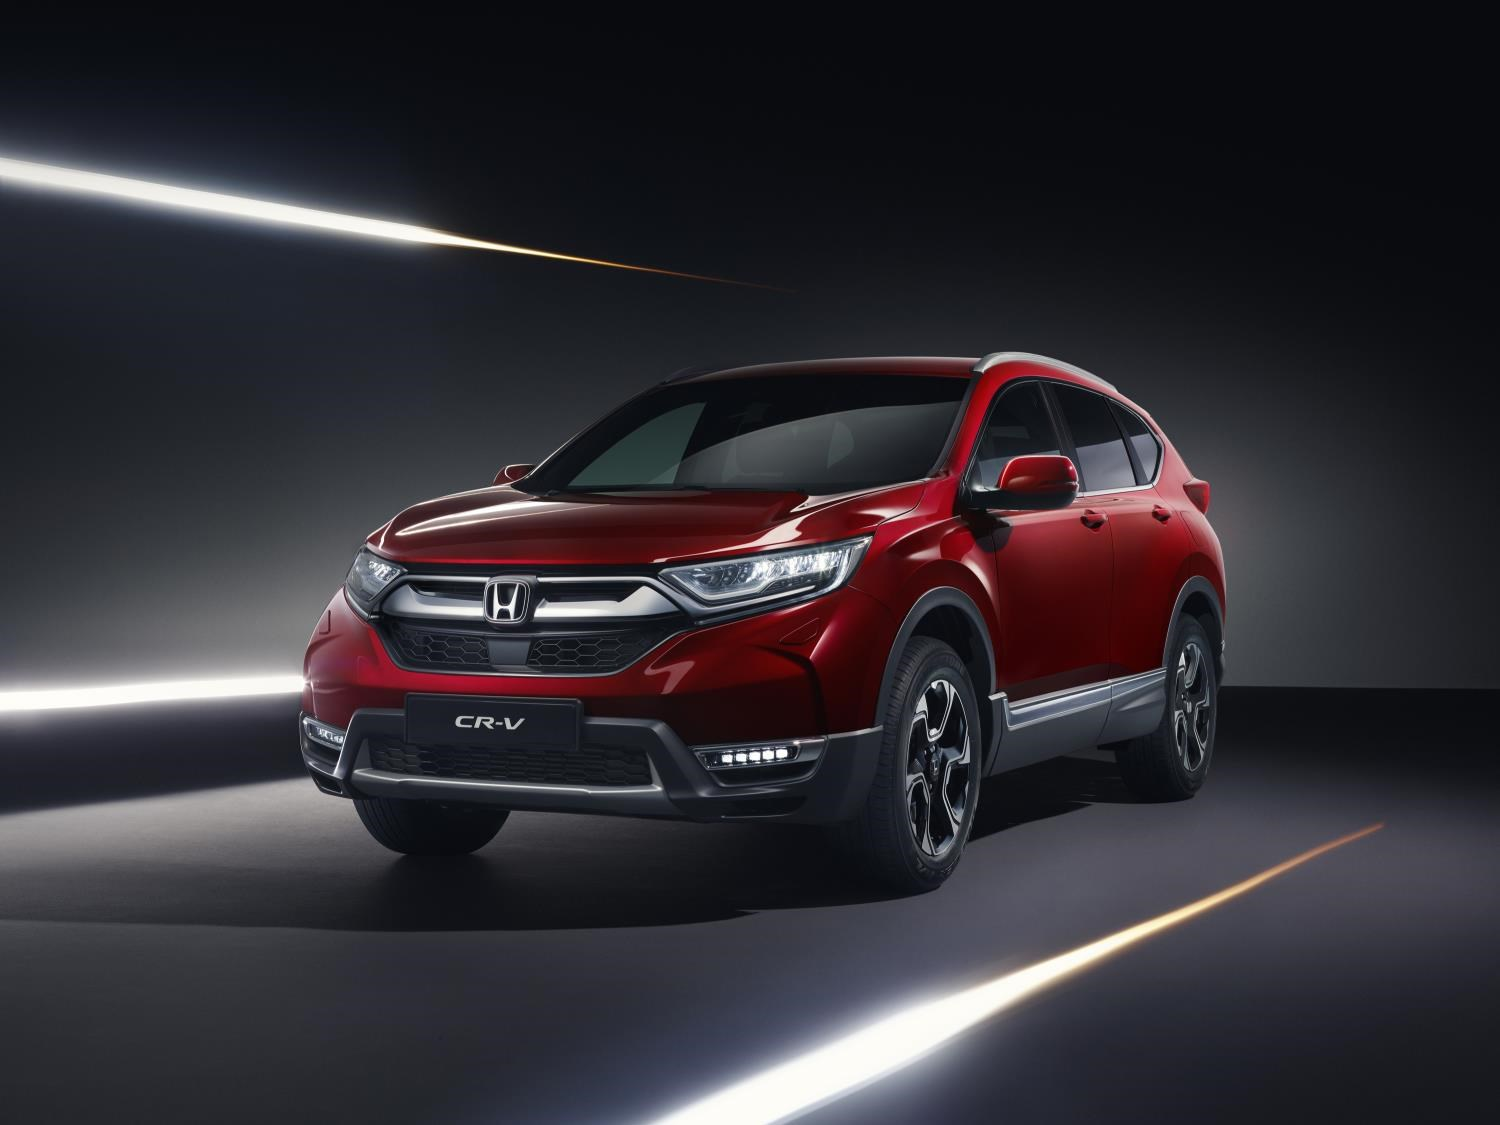 new honda cr v suv will be available with hybrid engine and no diesel option manufacturer news. Black Bedroom Furniture Sets. Home Design Ideas